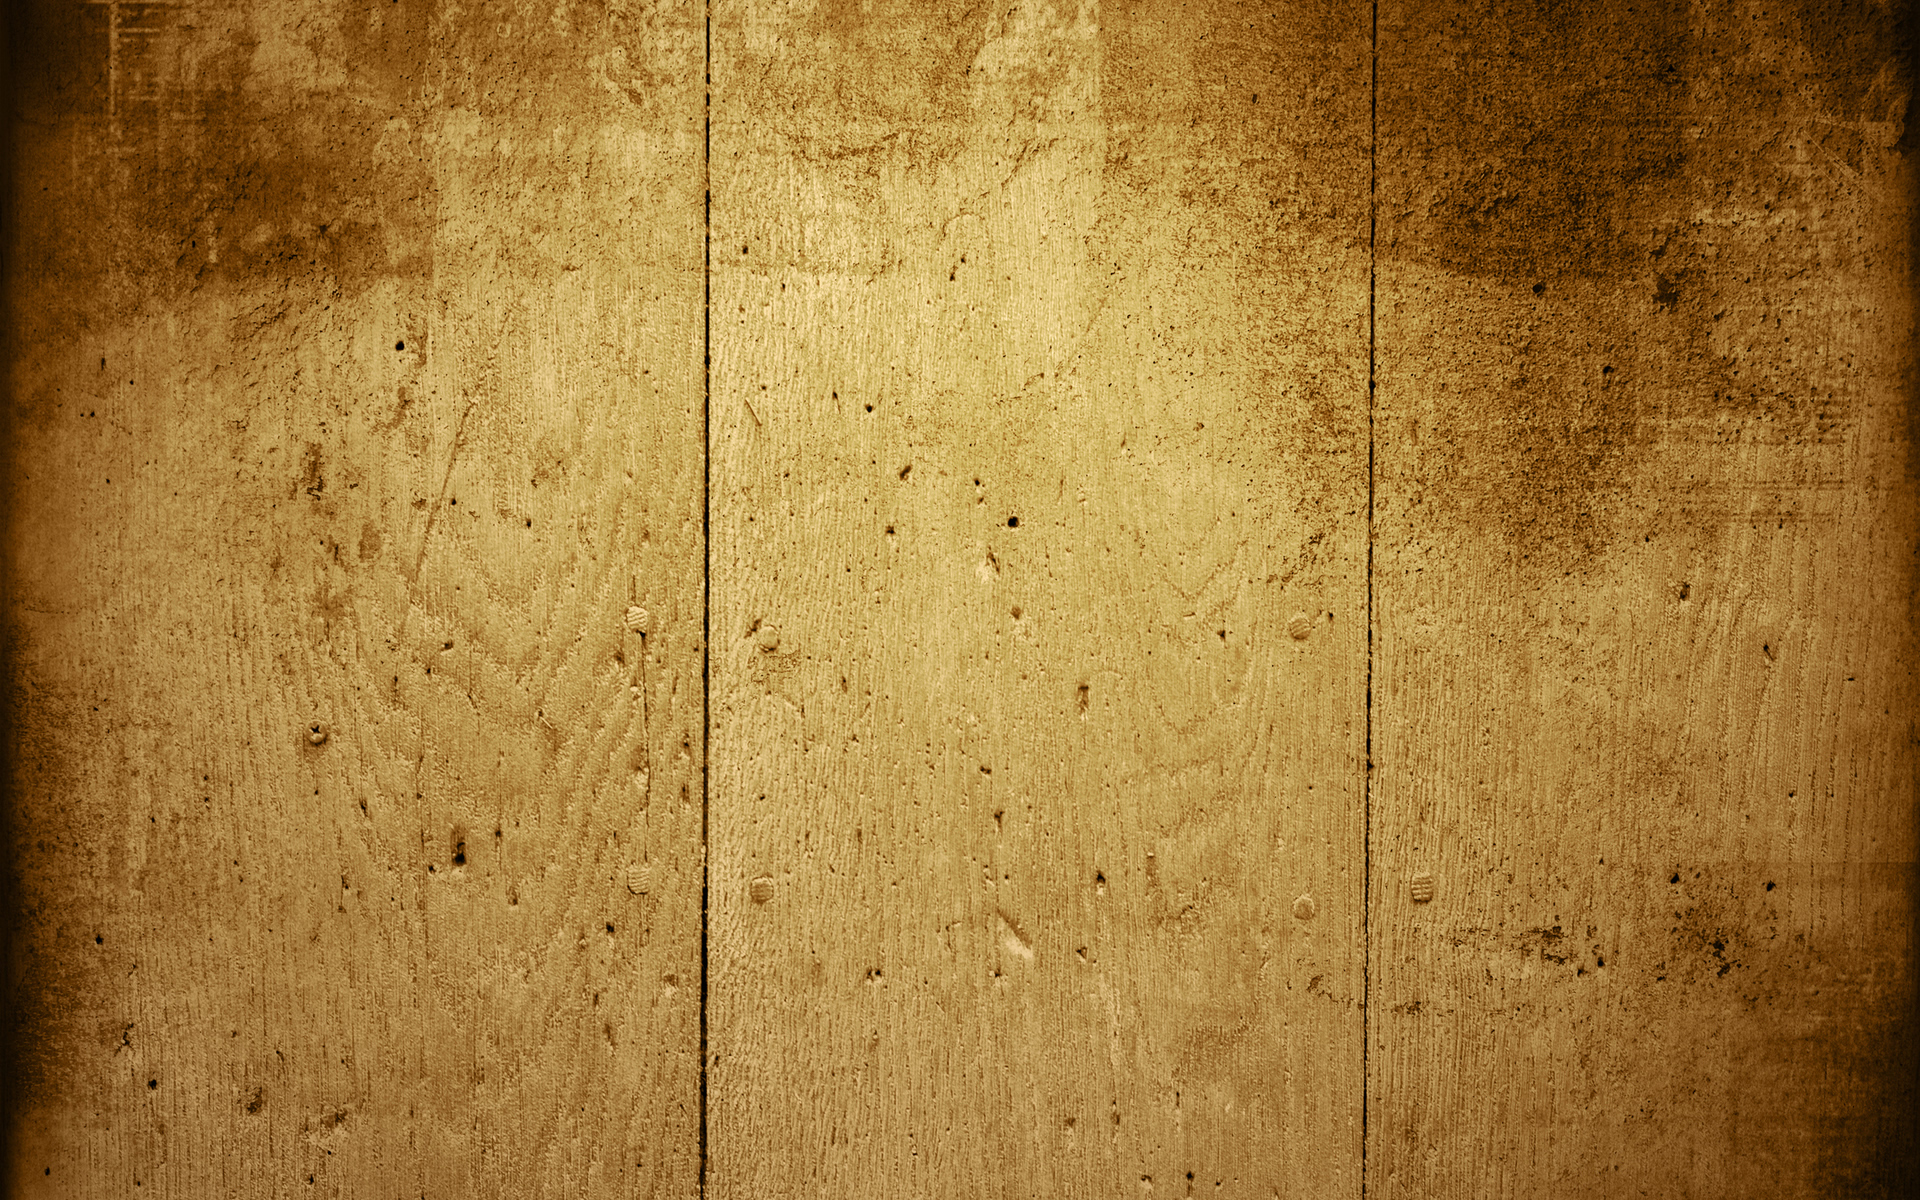 wood texture wallpaper, download photo, tree wood